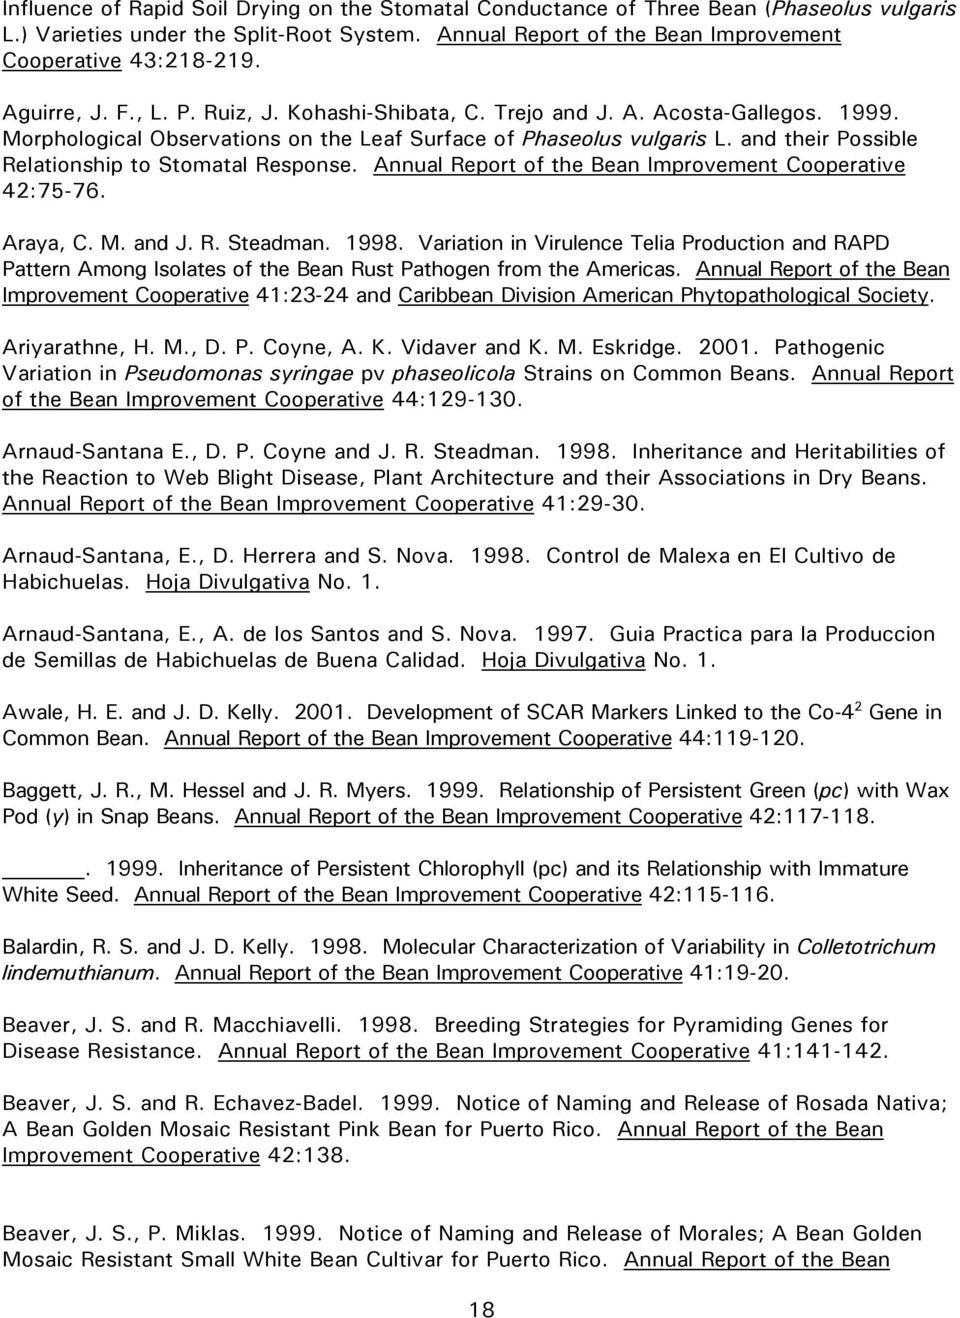 and their Possible Relationship to Stomatal Response. Annual Report of the Bean Improvement Cooperative 42:75-76. Araya, C. M. and J. R. Steadman. 1998.